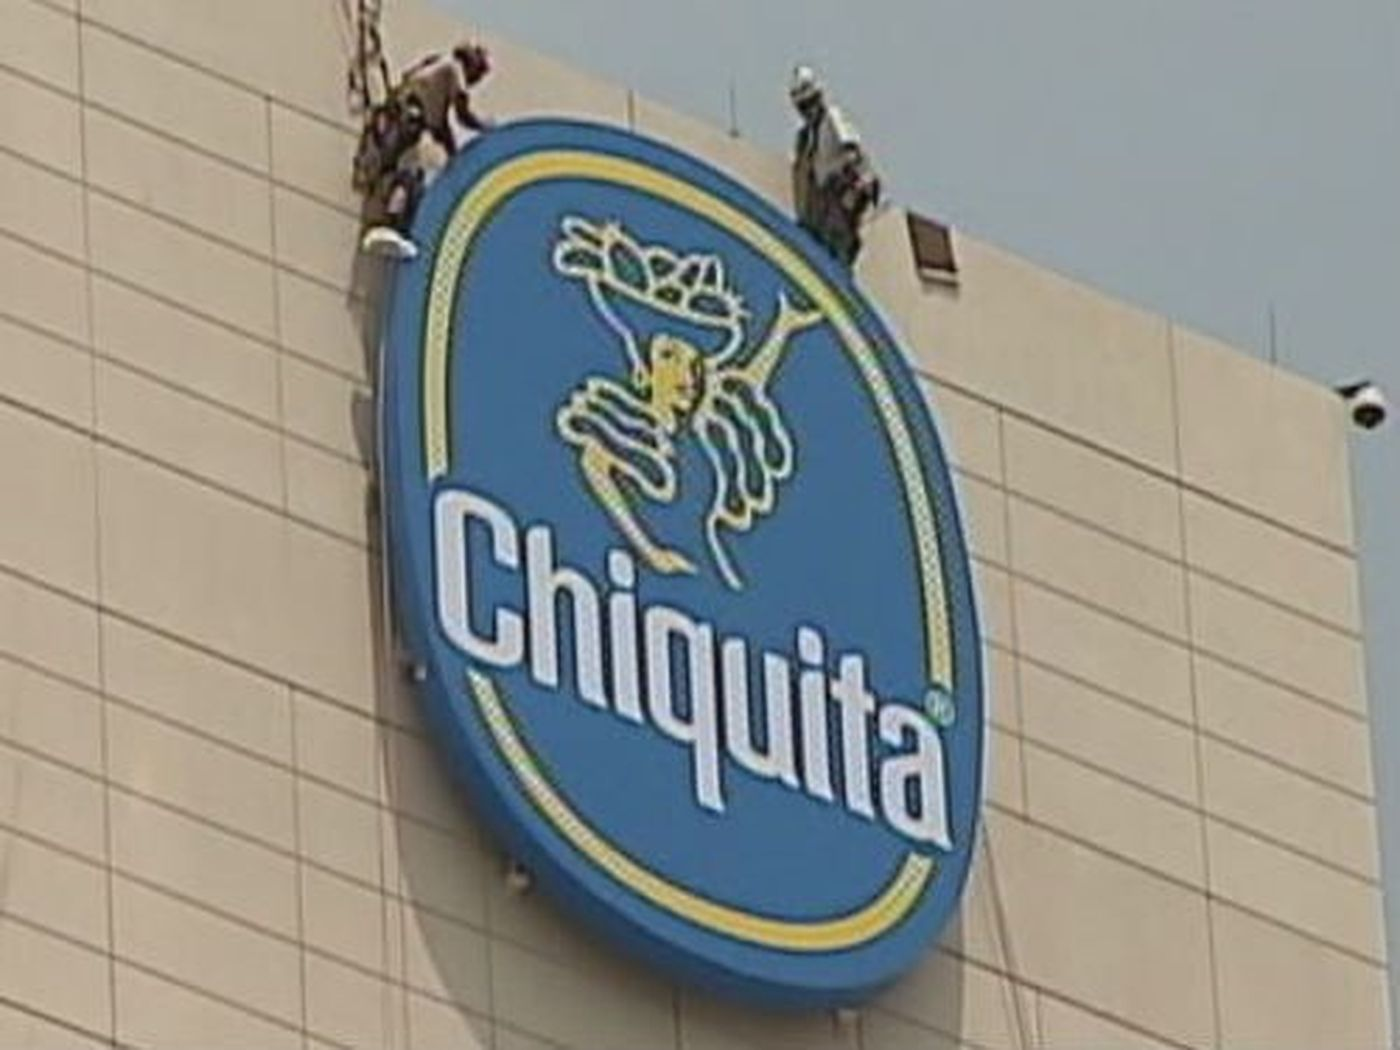 Chiquita Logo - Chiquita logo makes it's mark in uptown Charlotte